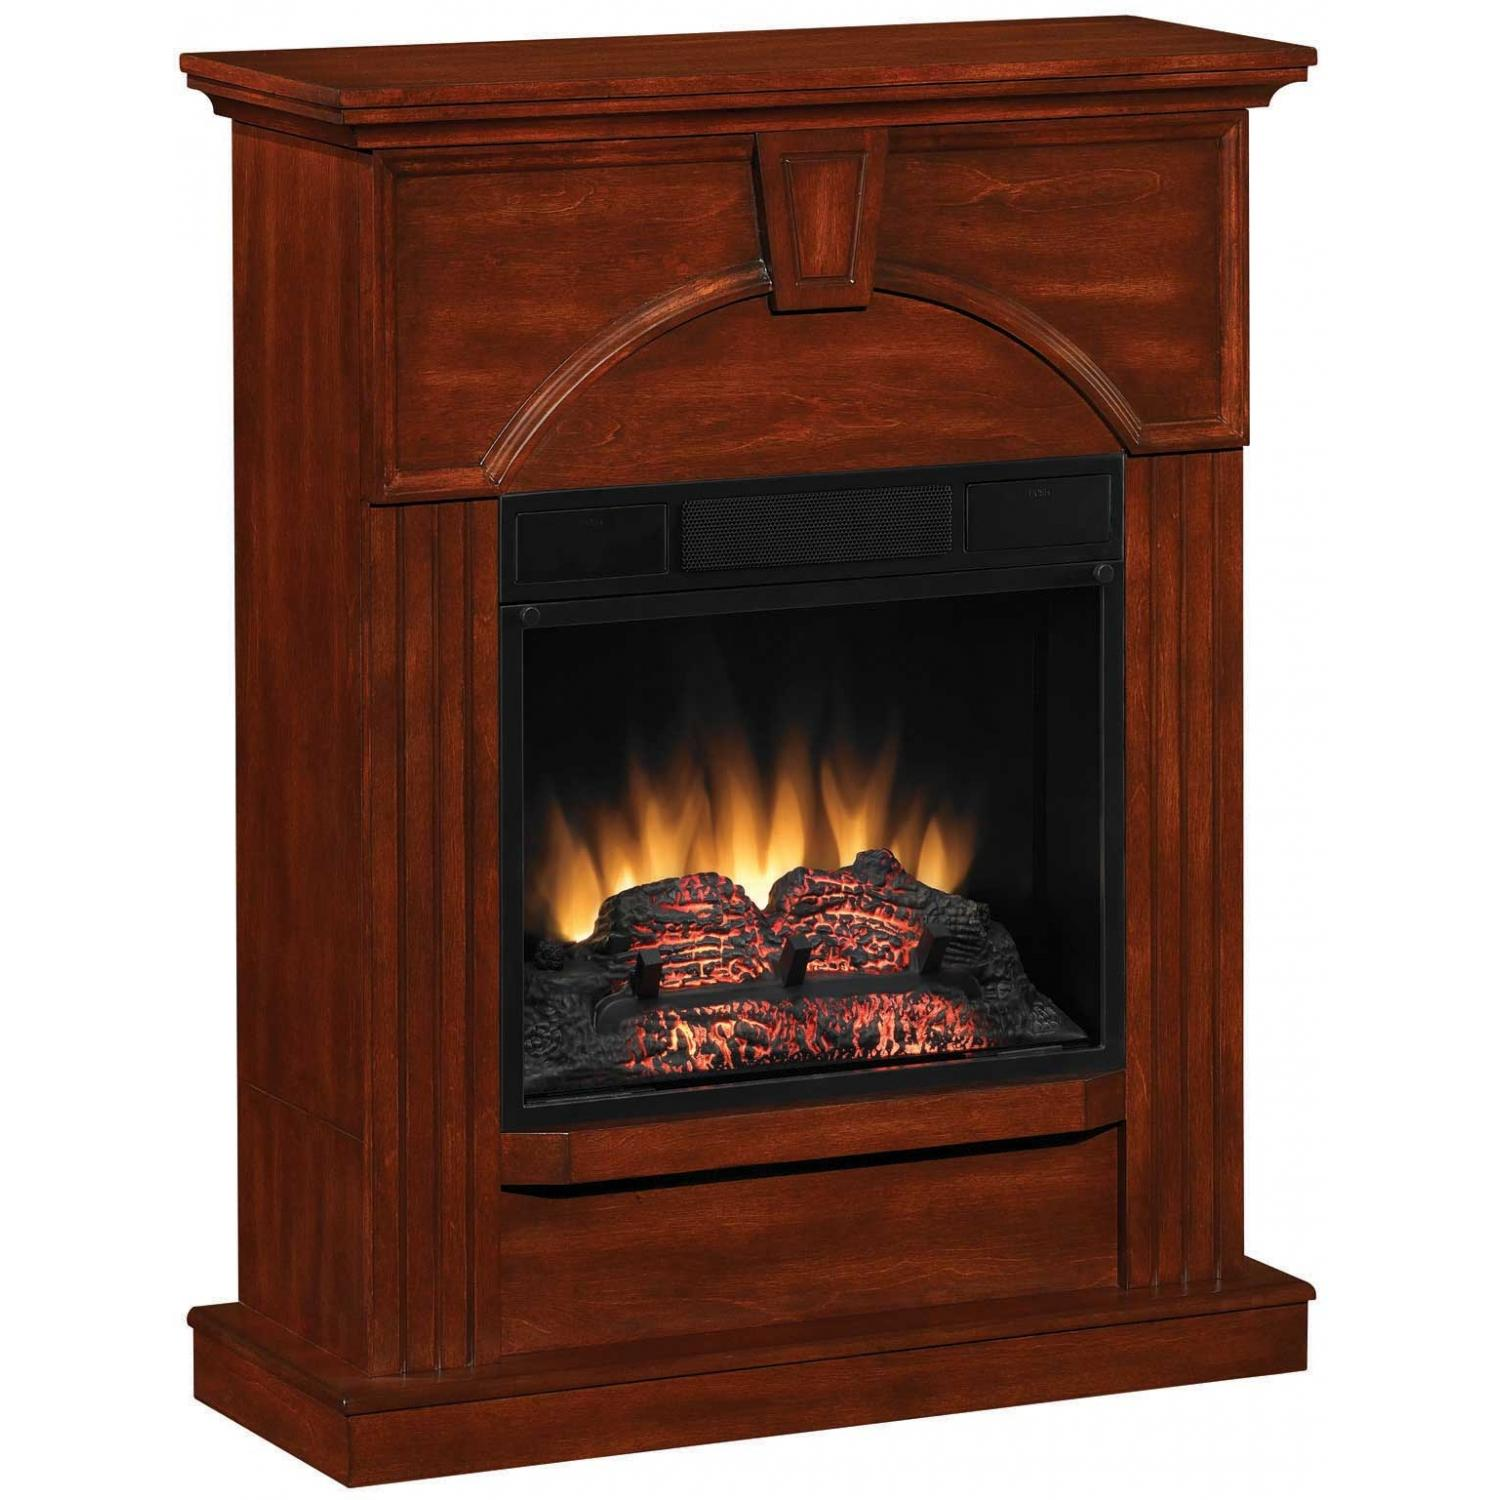 ClassicFlame 18WM9040-C242 Advantage Arcadia Electric Fireplace - Vintage Cherry